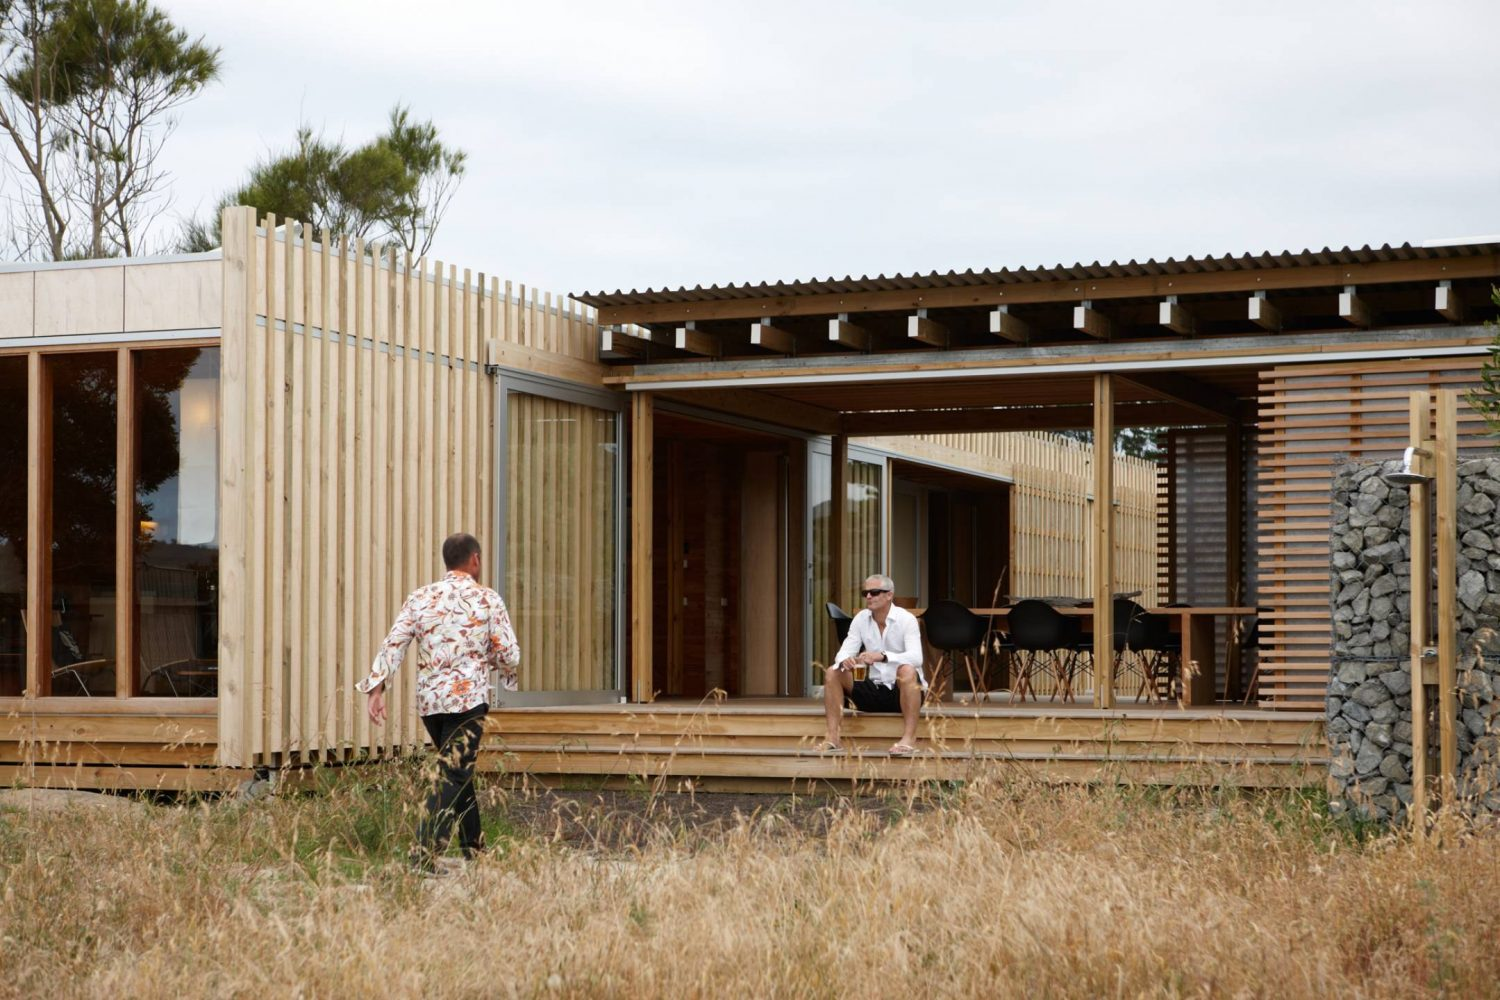 Timms Bach by Herbst Architects